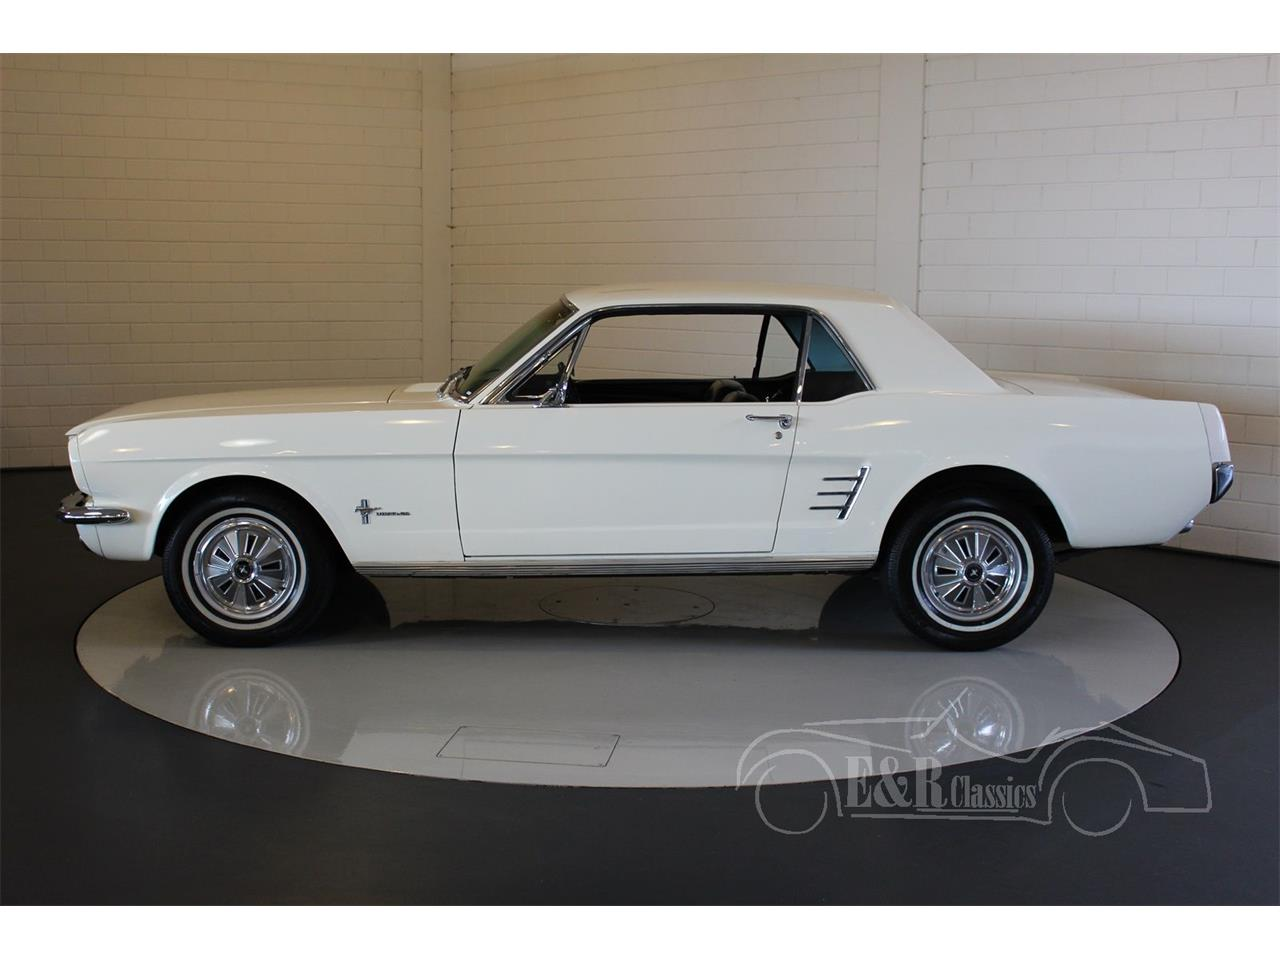 Large Picture of 1966 Ford Mustang - $30,300.00 Offered by E & R Classics - MO9G